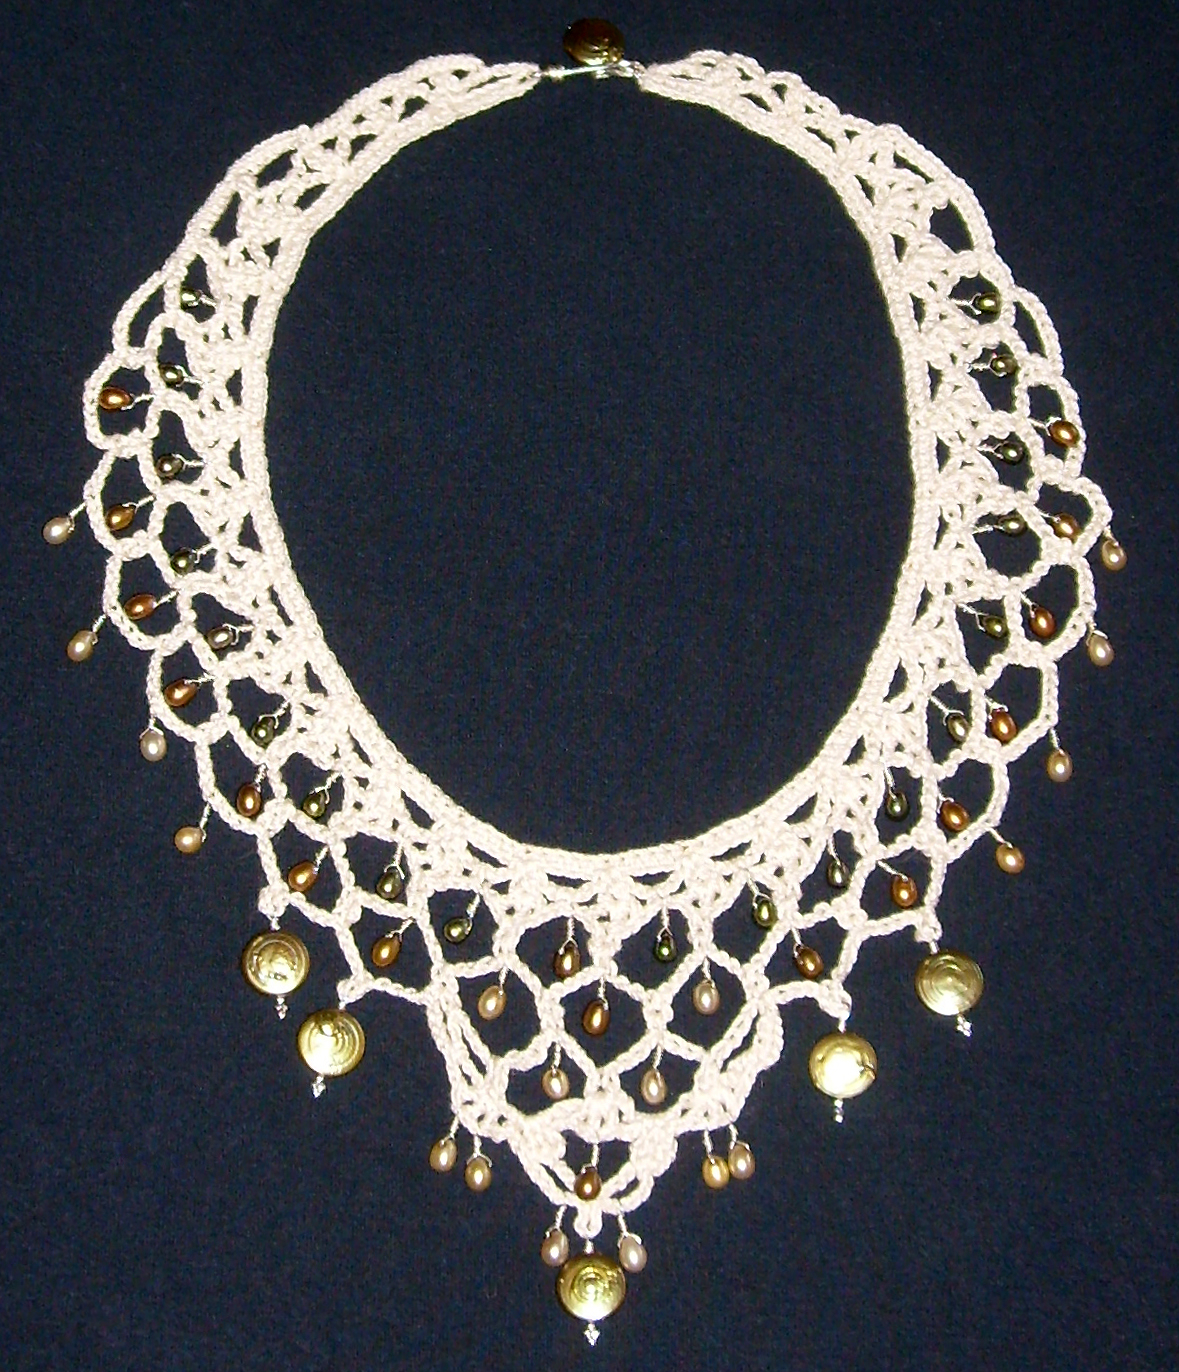 Cultured Freshwater Pearls – Wikipedia With Regard To Most Current Freshwater Cultured Pearls & Beads Necklaces (View 15 of 25)